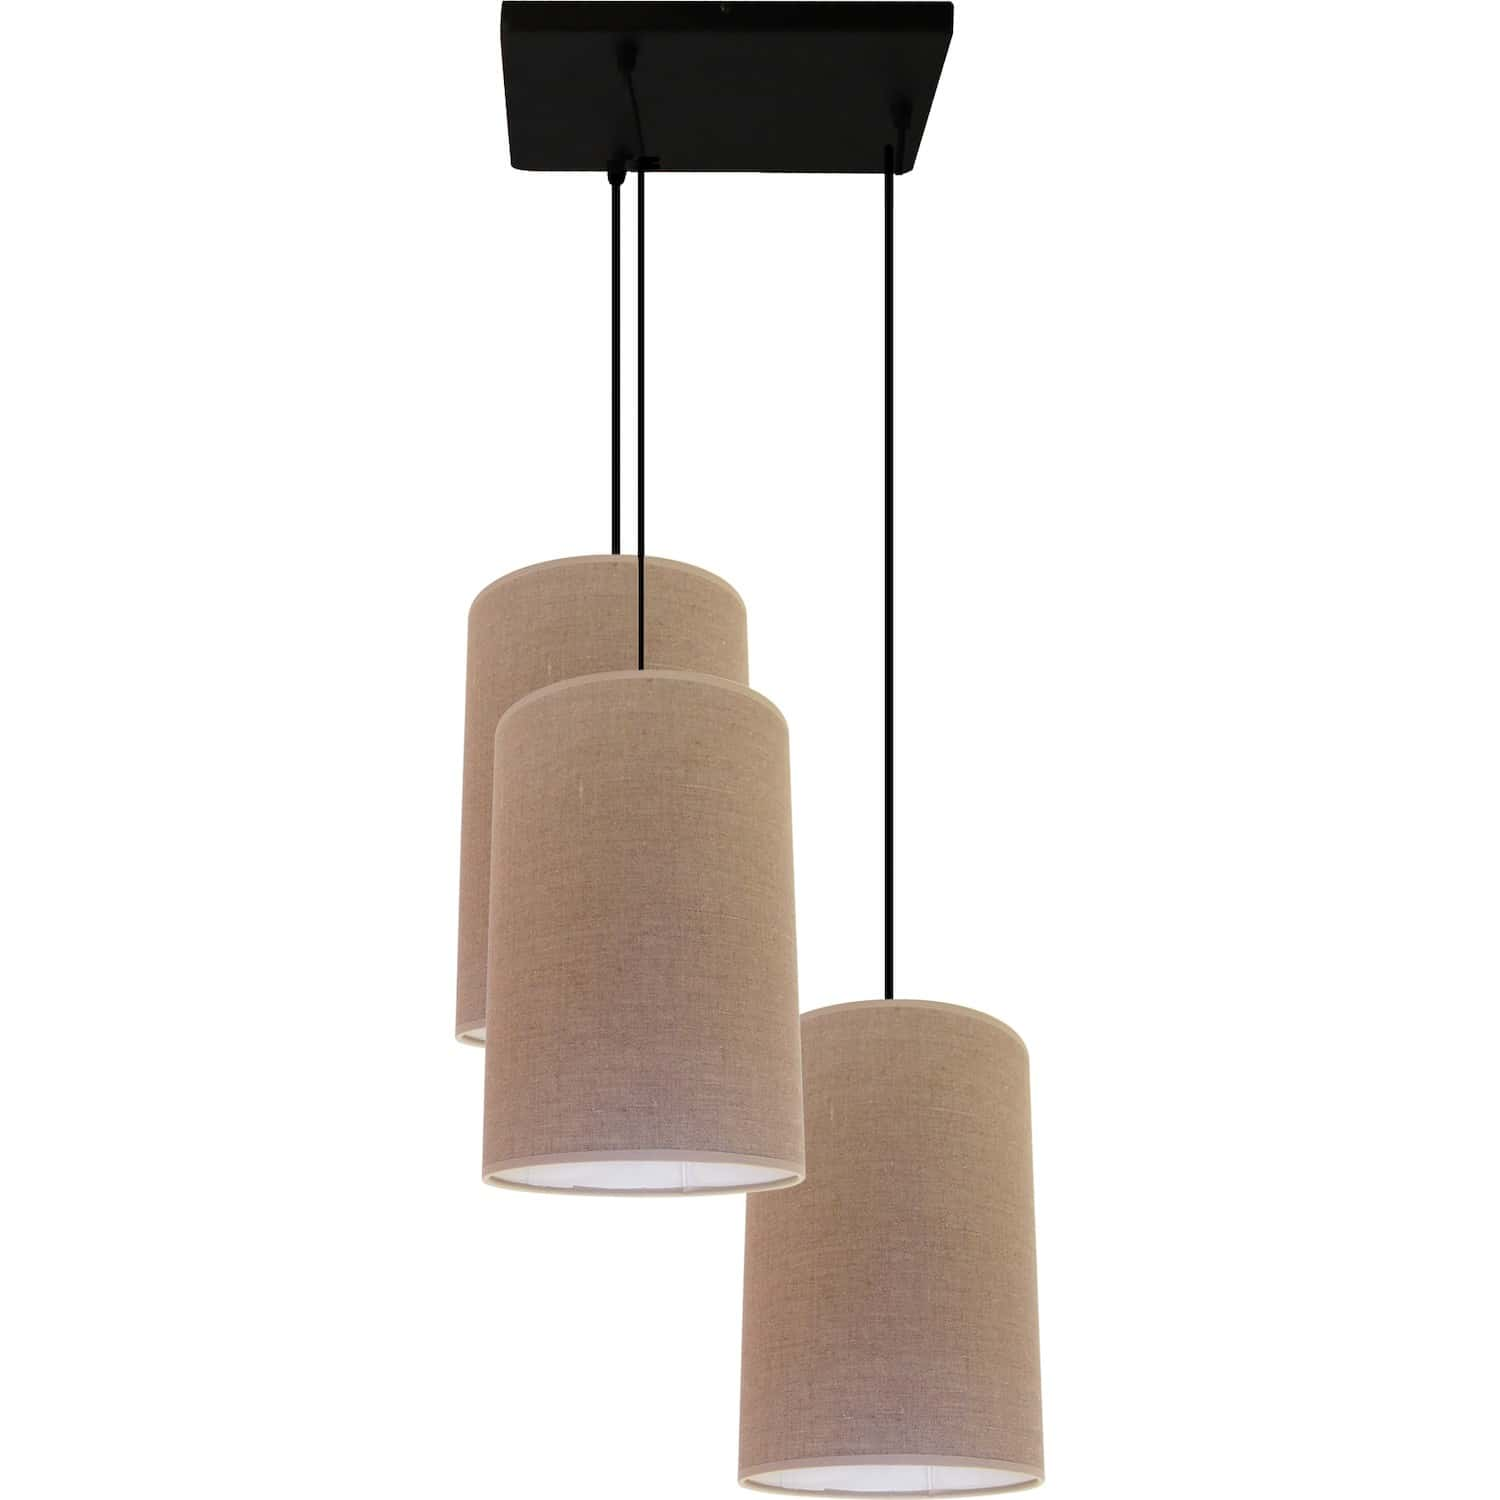 Suspension Lin Suspension 3 Lampes Abat Jour Tissu